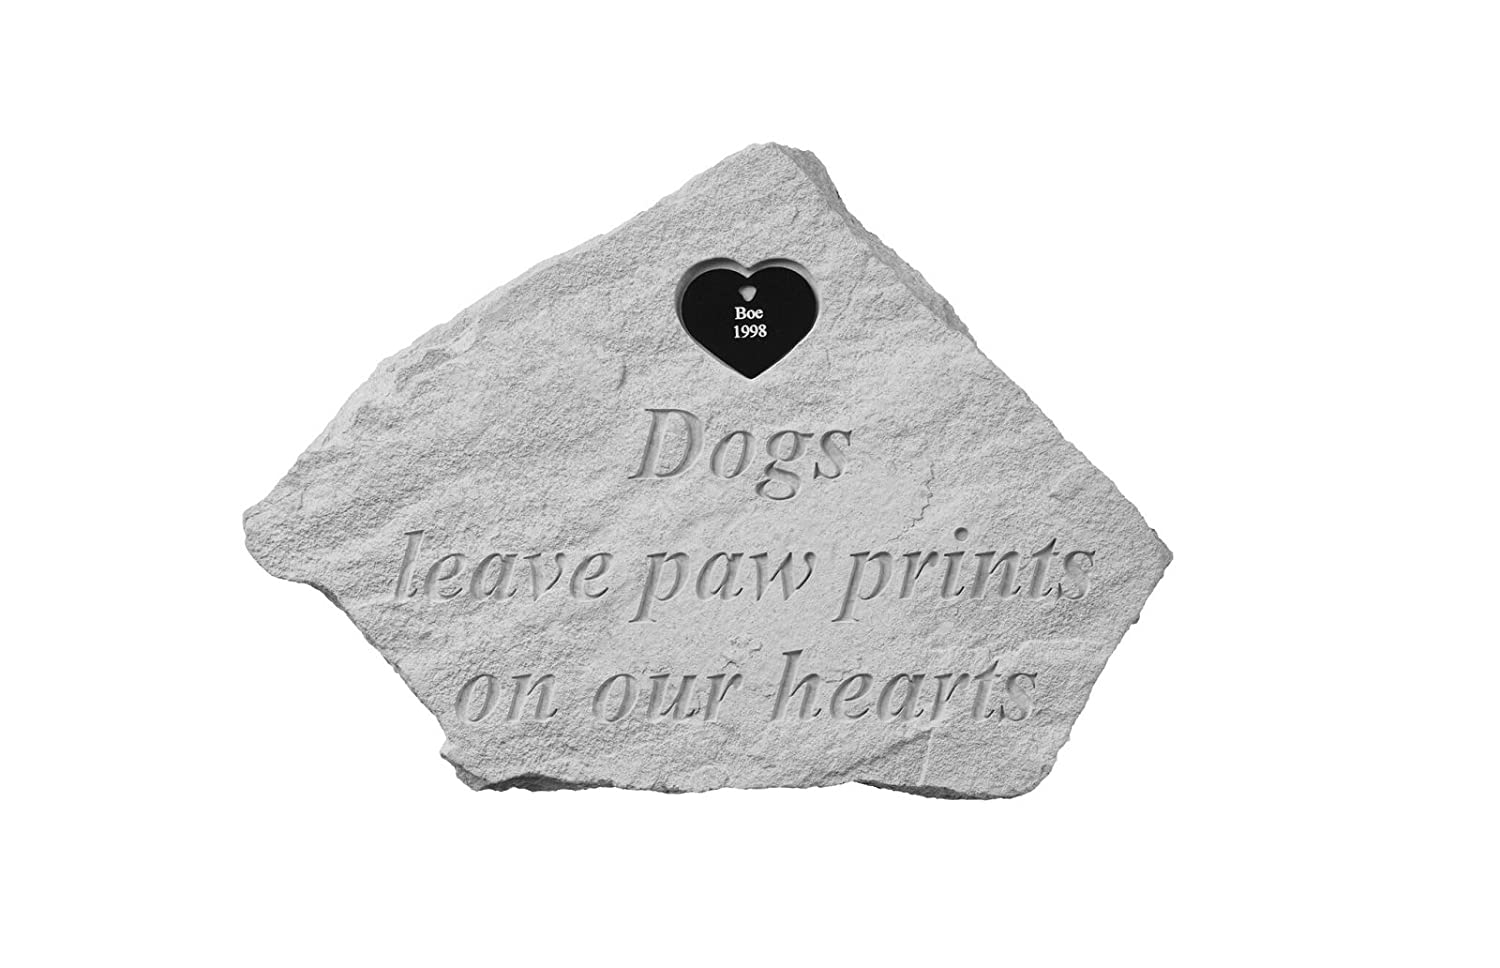 Dogs leave paw prints...w heart tag Personalized Memorial Stone